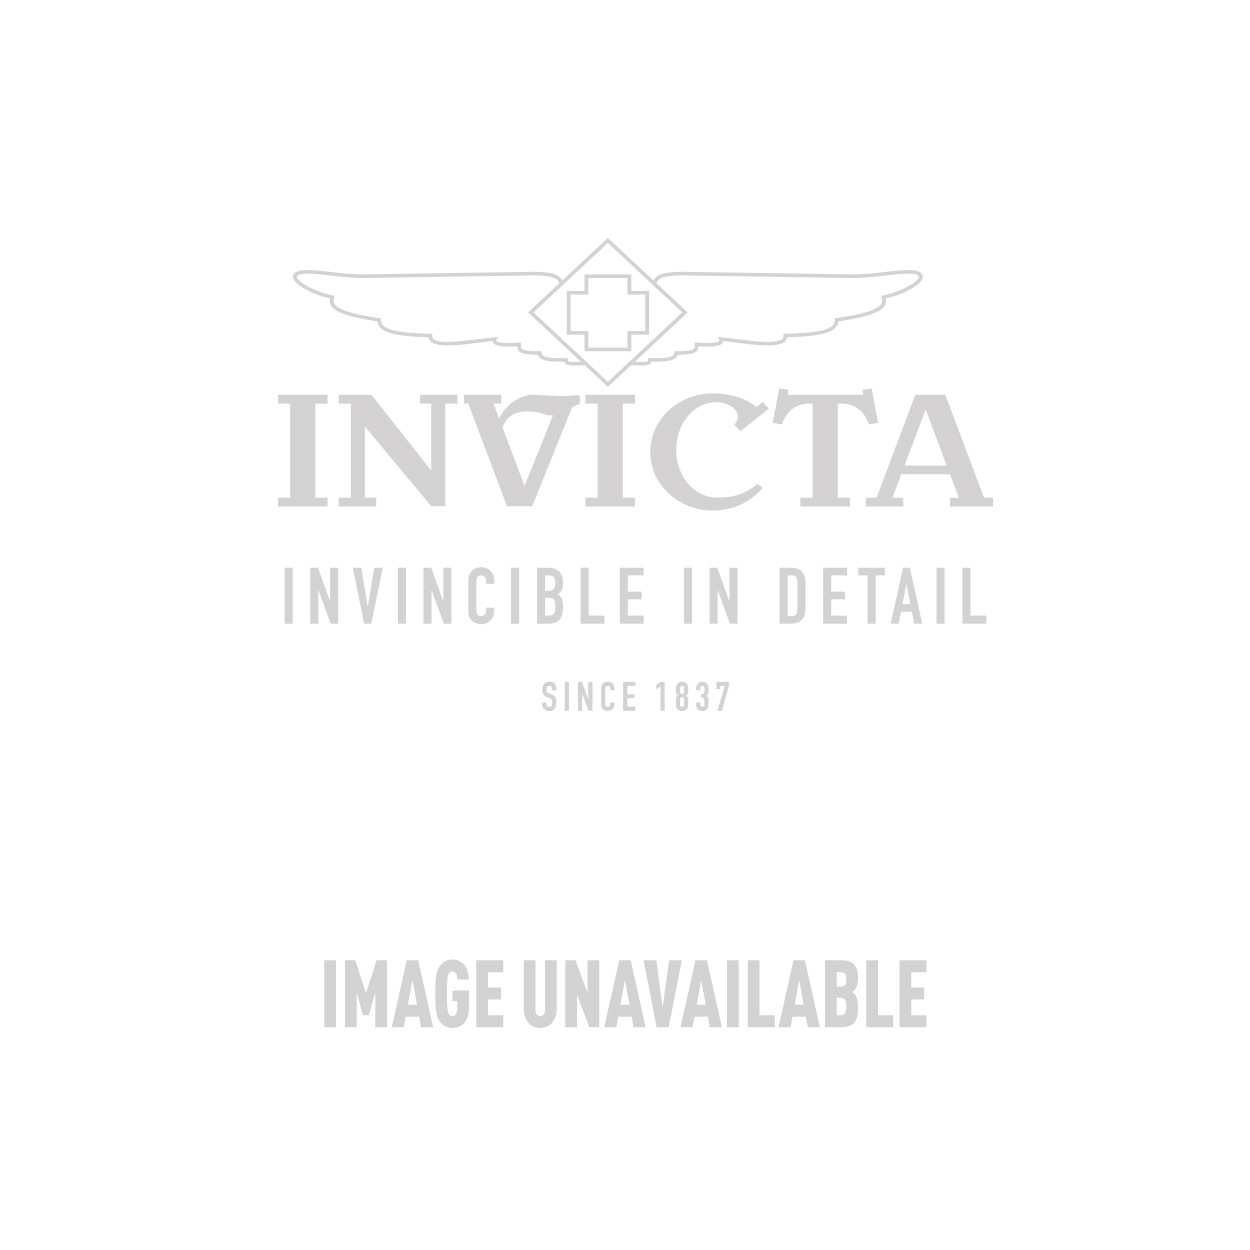 Invicta Specialty Swiss Movement Quartz Watch - Gold, Tungsten case with Gold tone Stainless Steel, Tungsten band - Model 18075